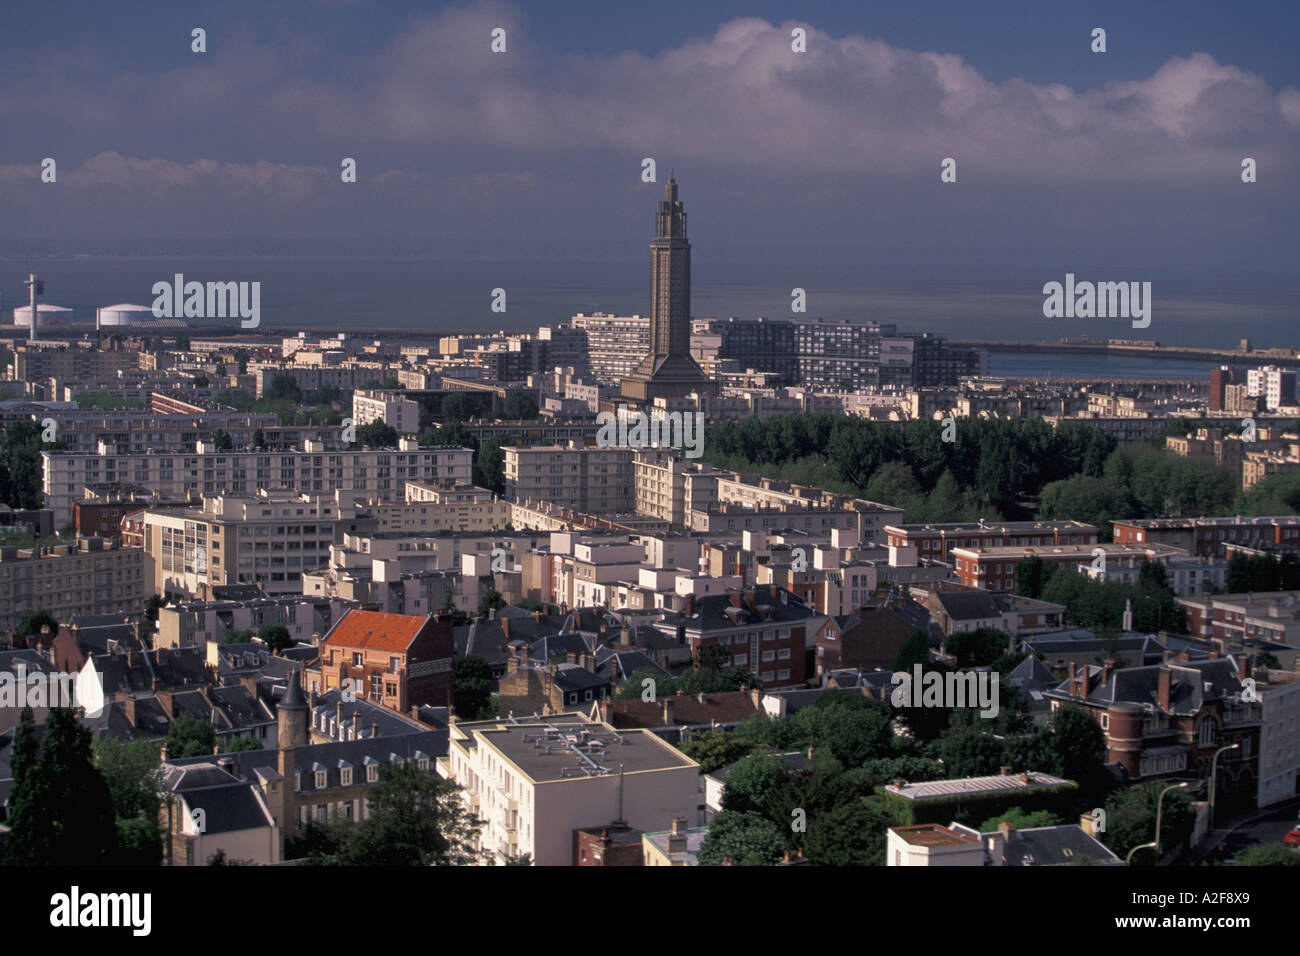 eu france normandy calvados le havre center city view rue stock photo 6003112 alamy. Black Bedroom Furniture Sets. Home Design Ideas